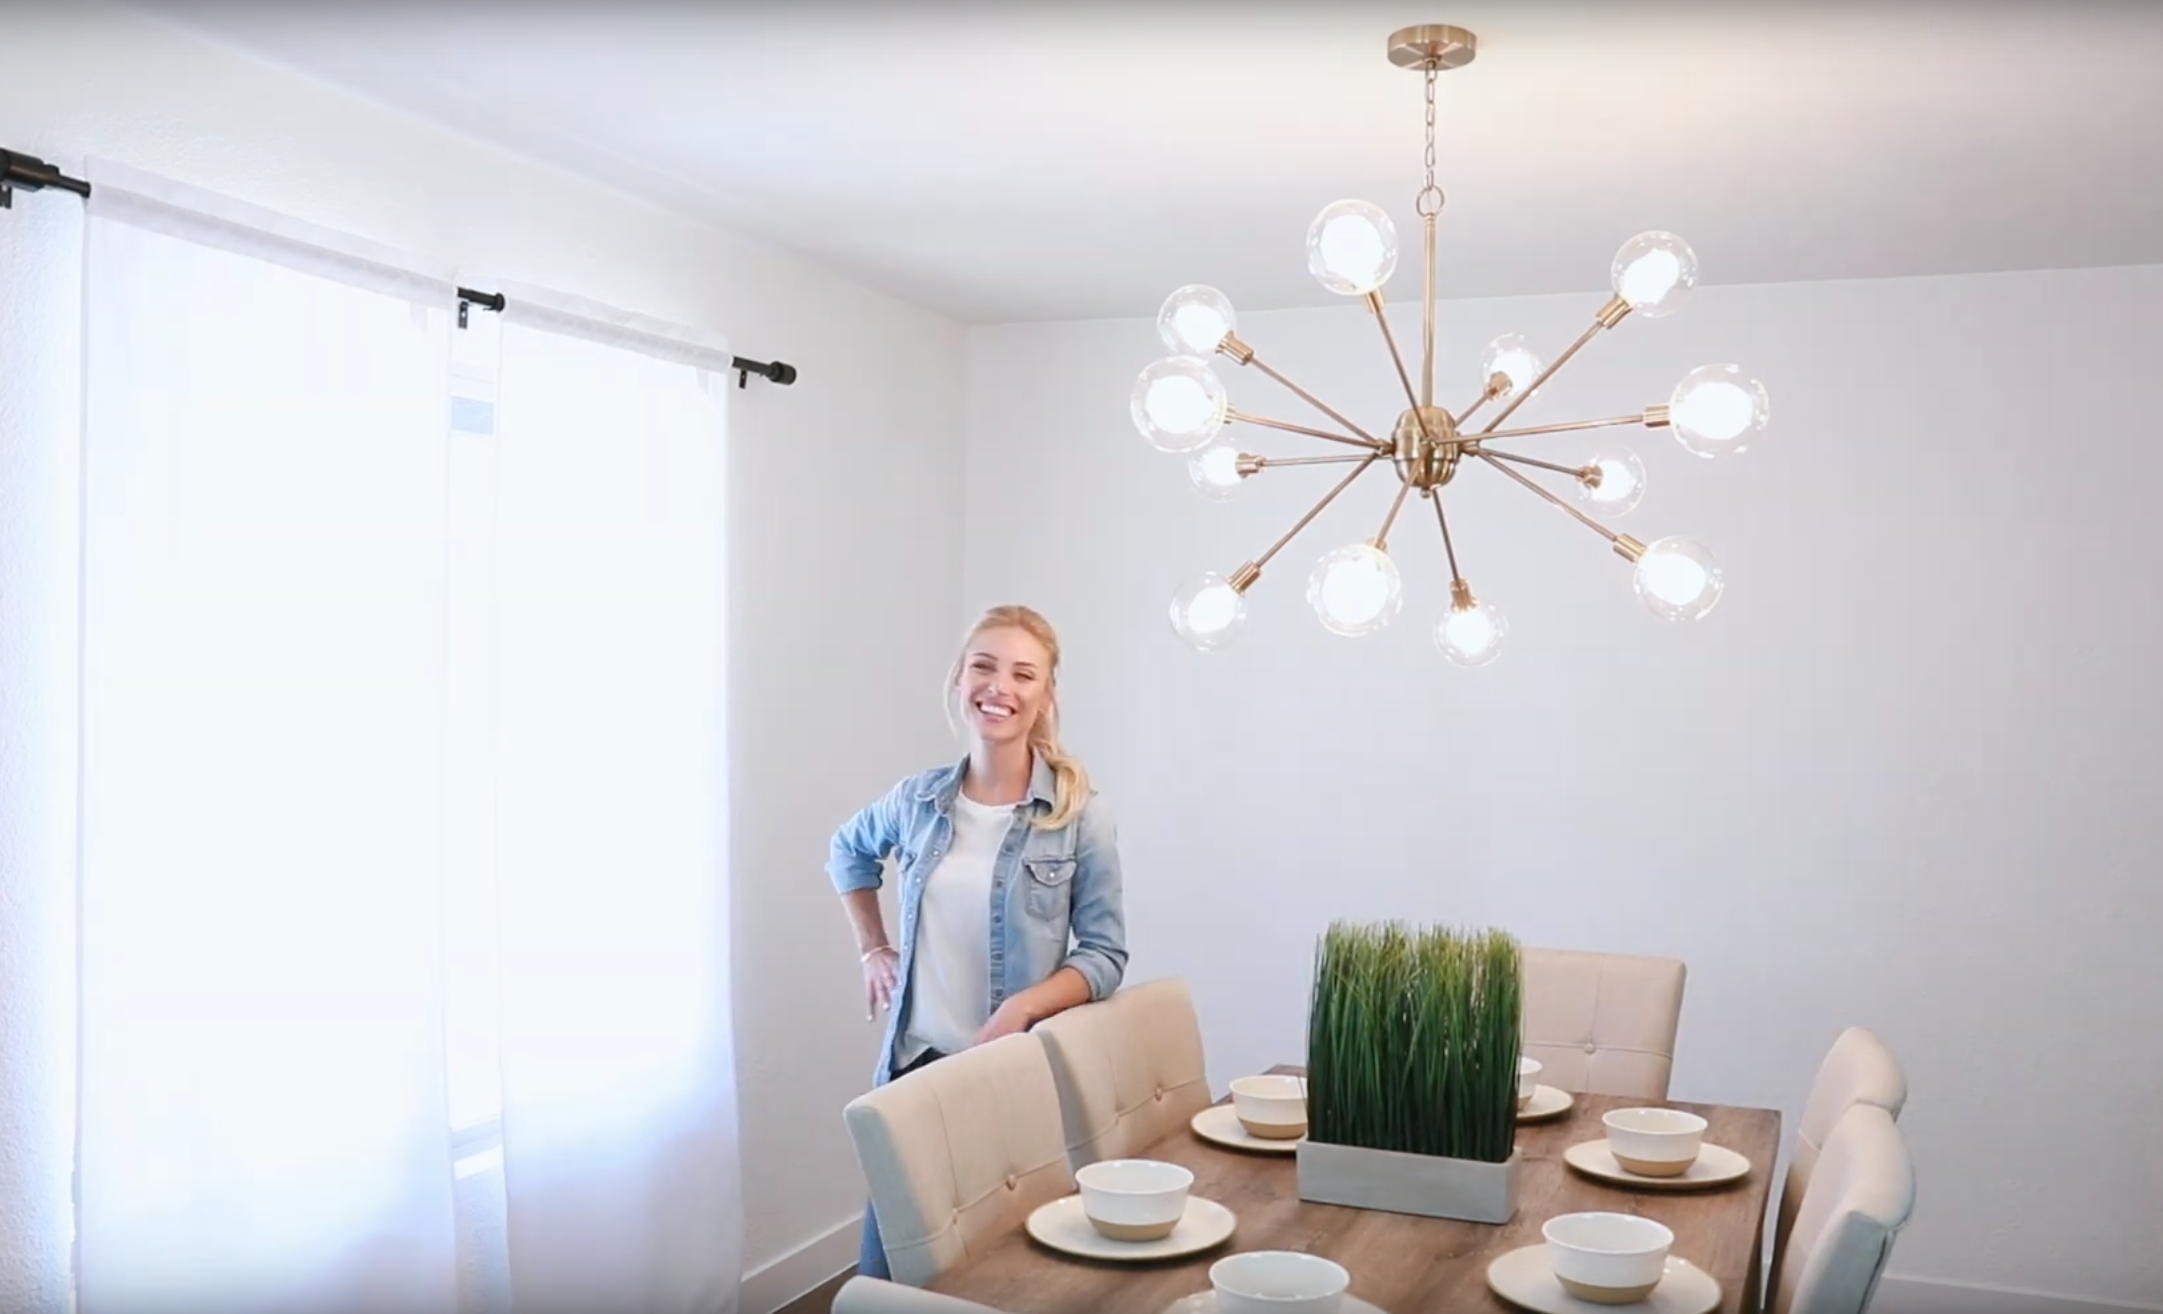 How to Install a Chain Link Chandelier